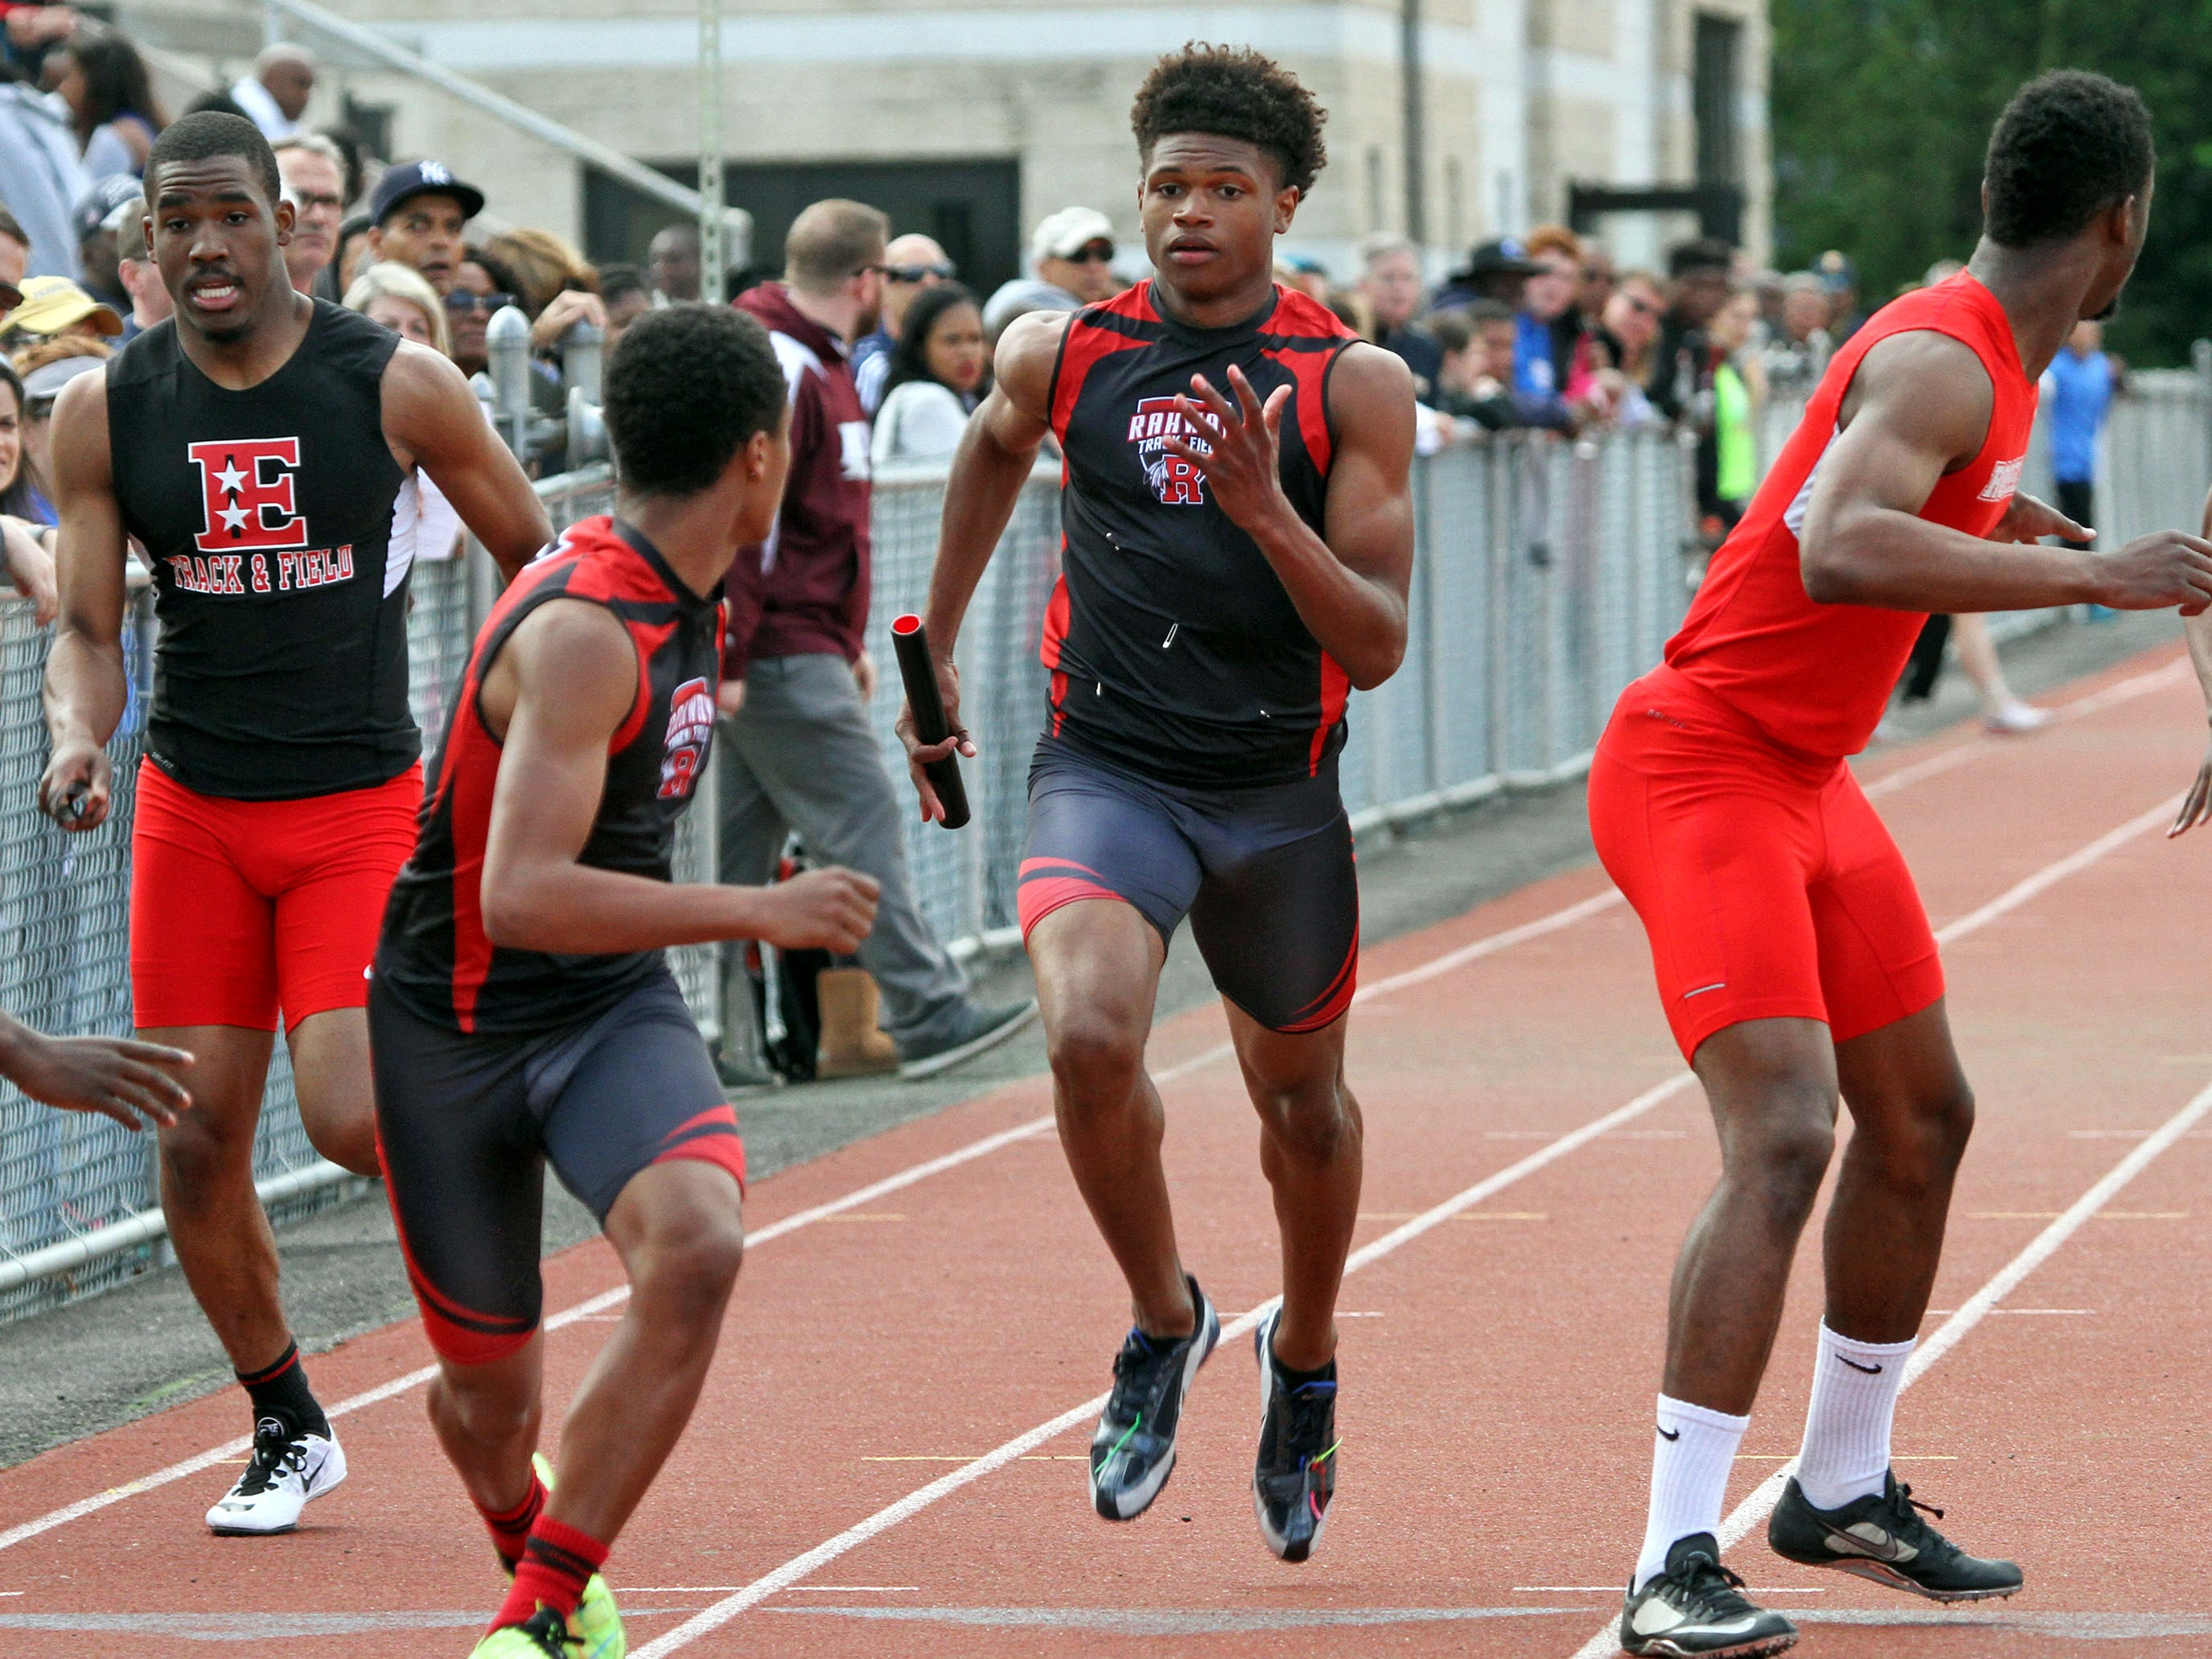 Rahway's Deshawne Bunion, center, is about to hand off the baton to Nasir Velez during the boys 4x200. This is action of the Union County Track and Field Relays.